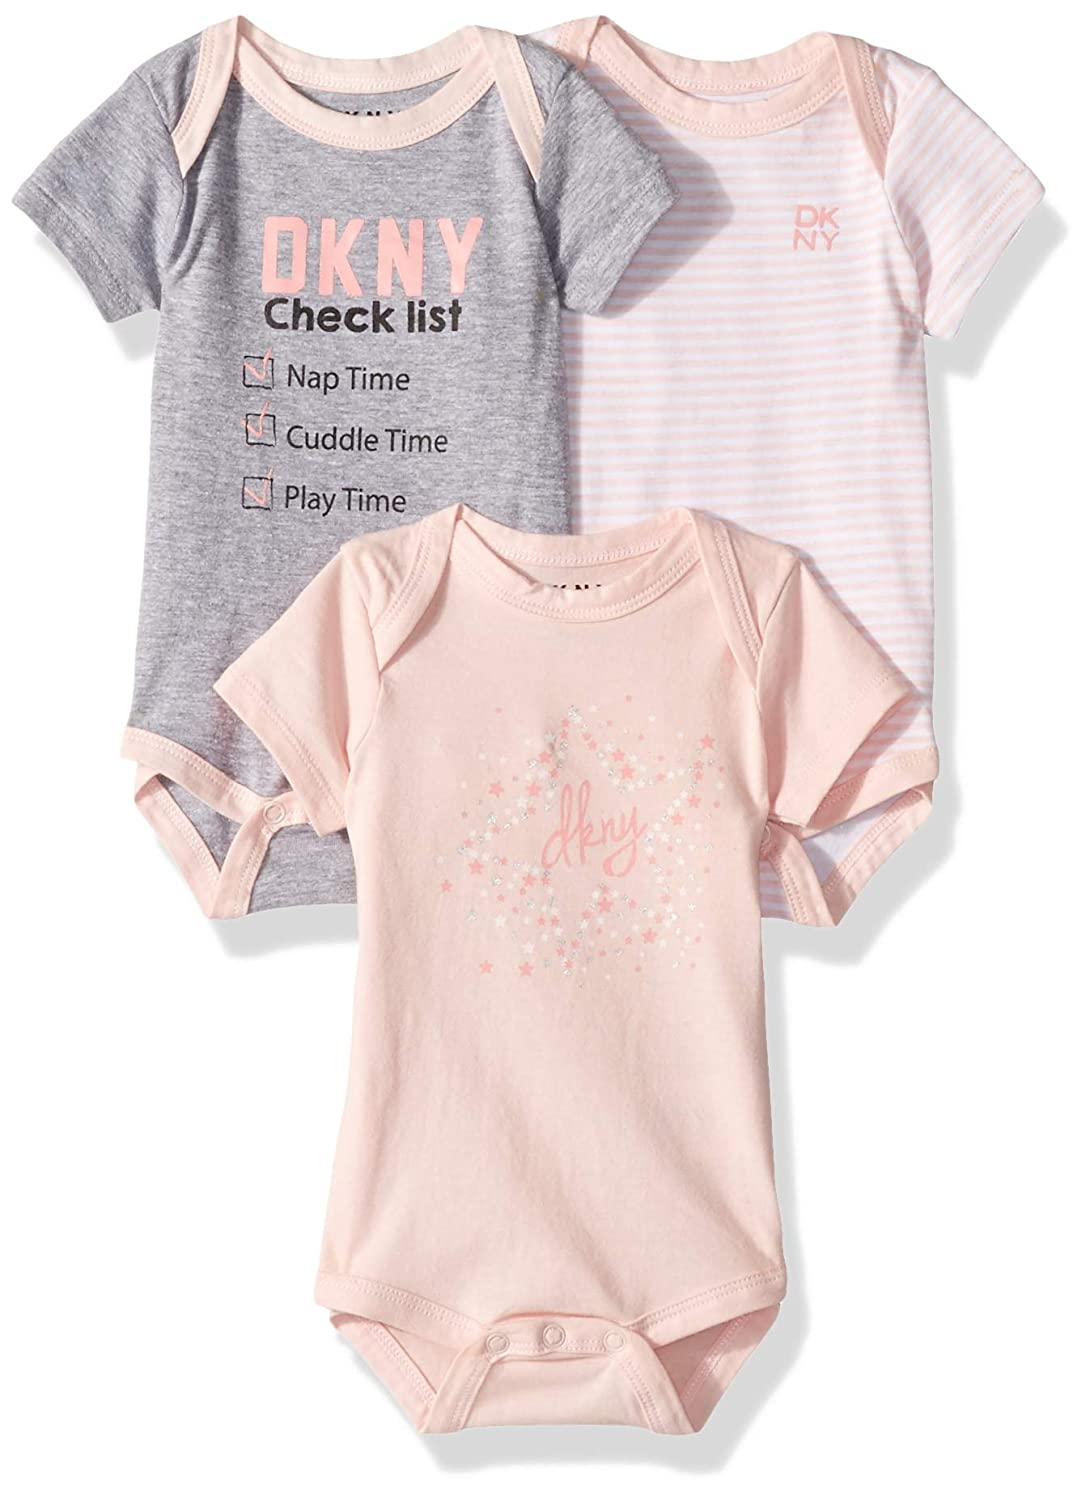 DKNY Baby Girls 3 Pack Check List Creeper Set DG_1916